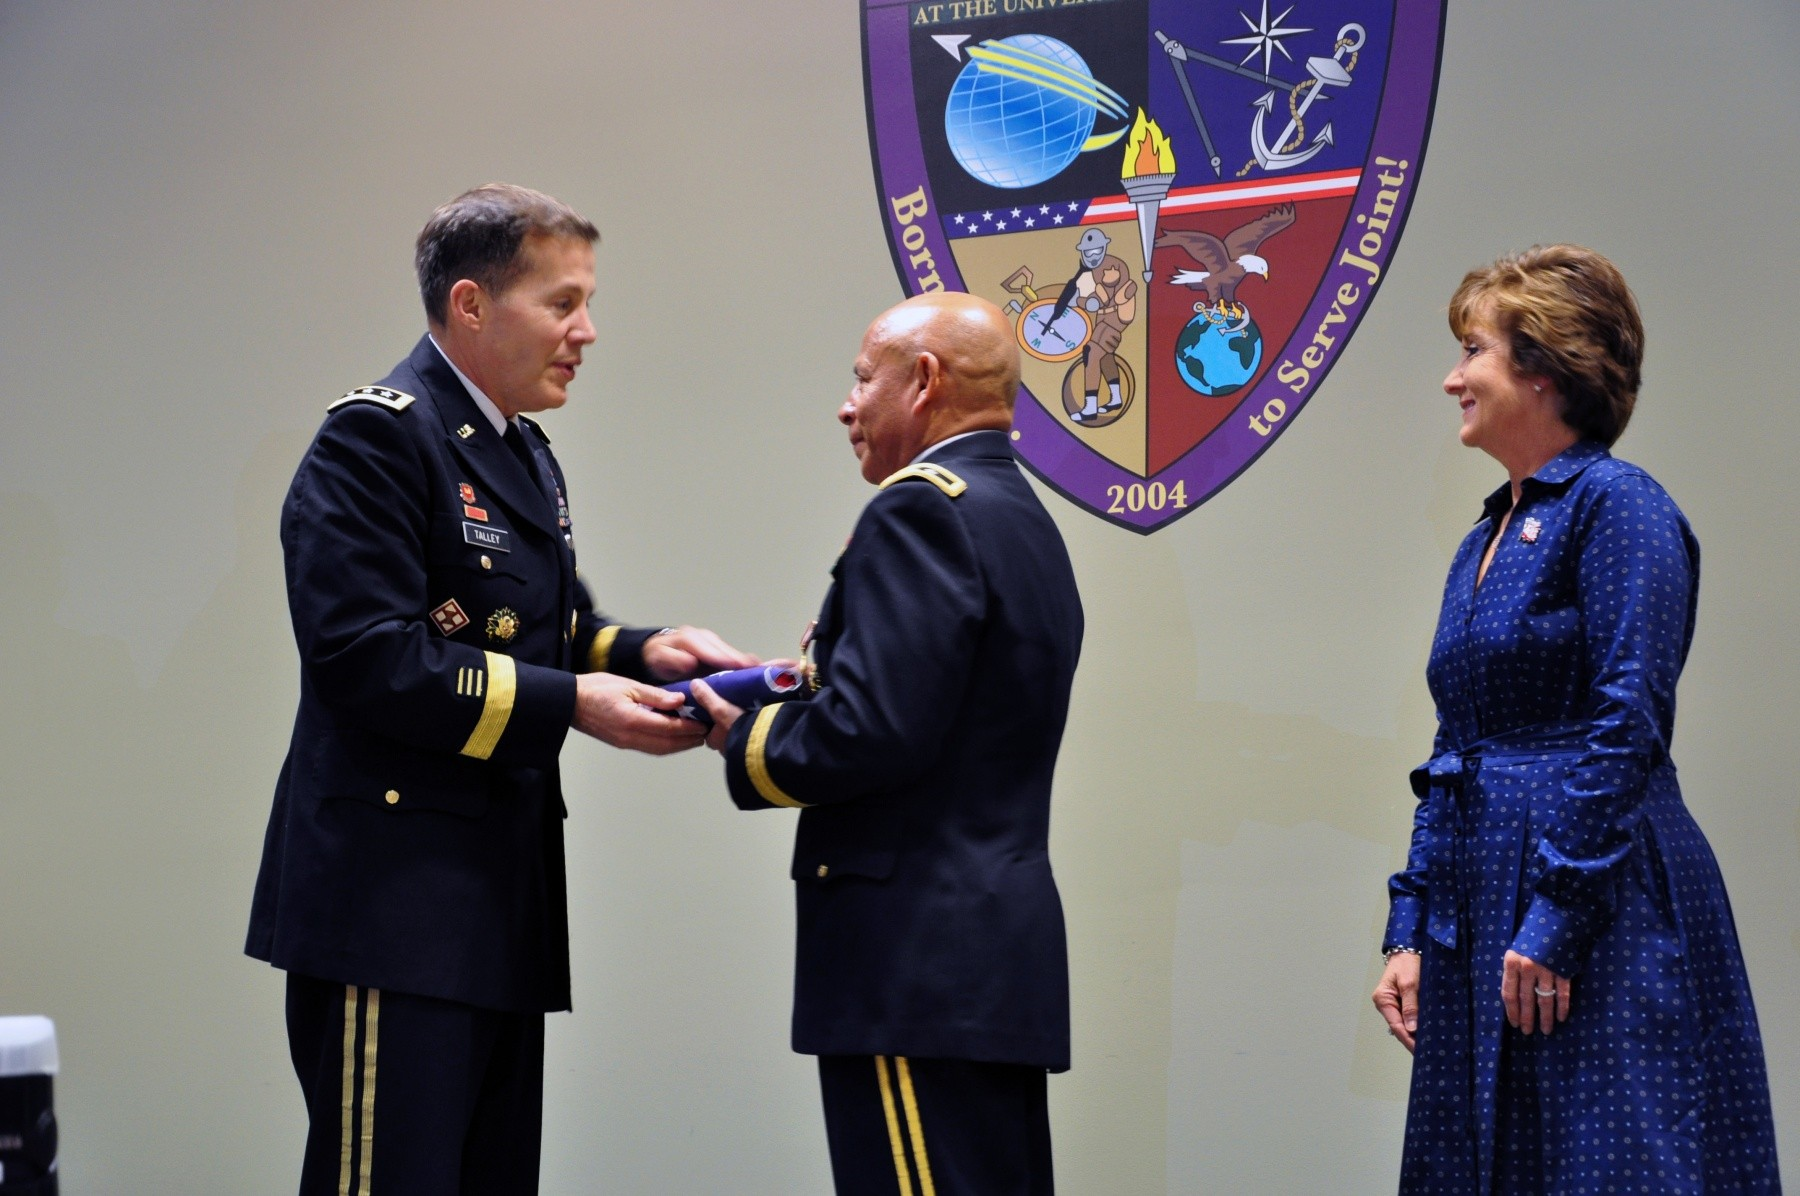 US Army Reserve chief of staff honored in military/civilian